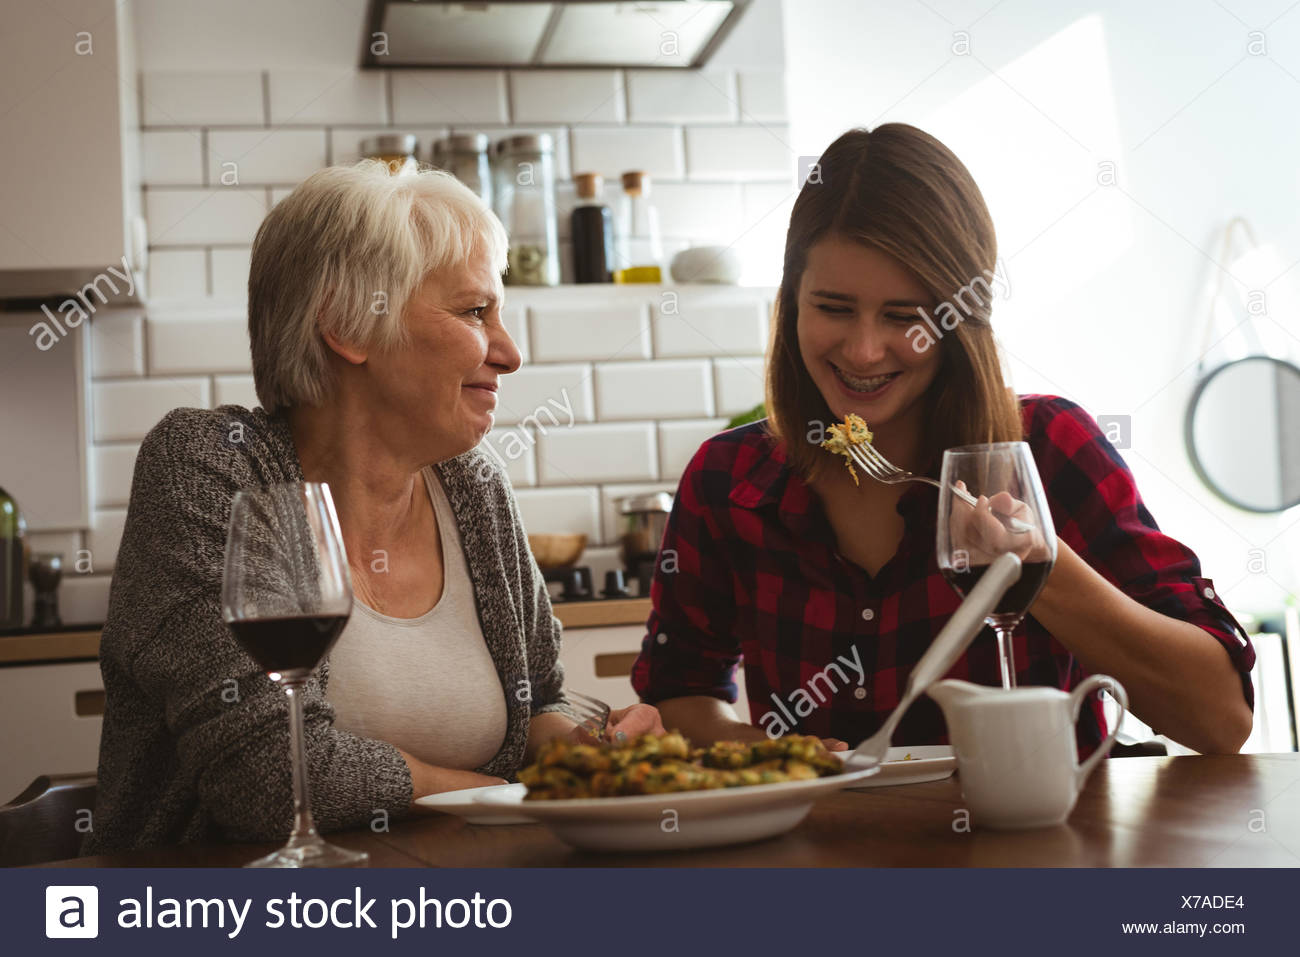 Senior woman and daughter eating omelet and wine - Stock Image